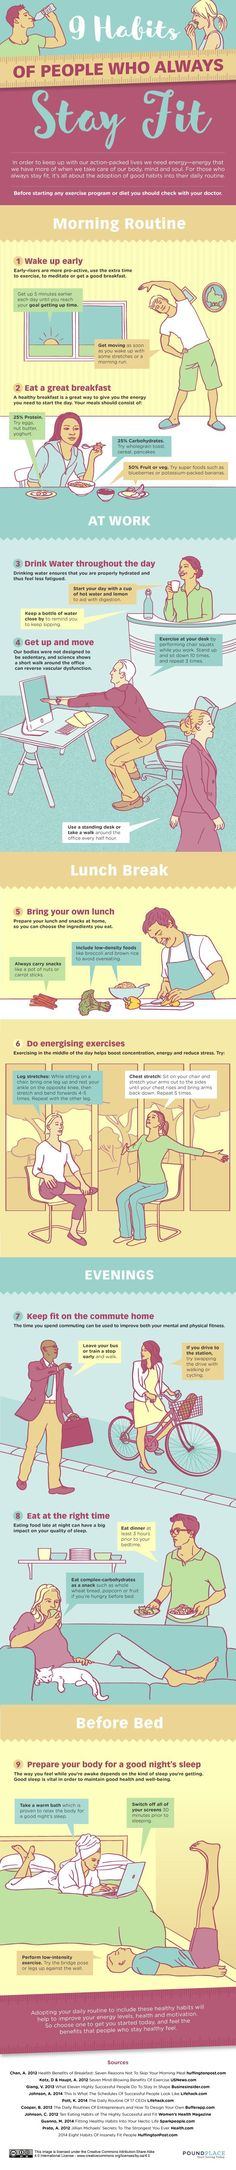 Get the top 9 habits of people who always stay fit in this fun infographic! Fitness tips & health tips to help you live healthier.